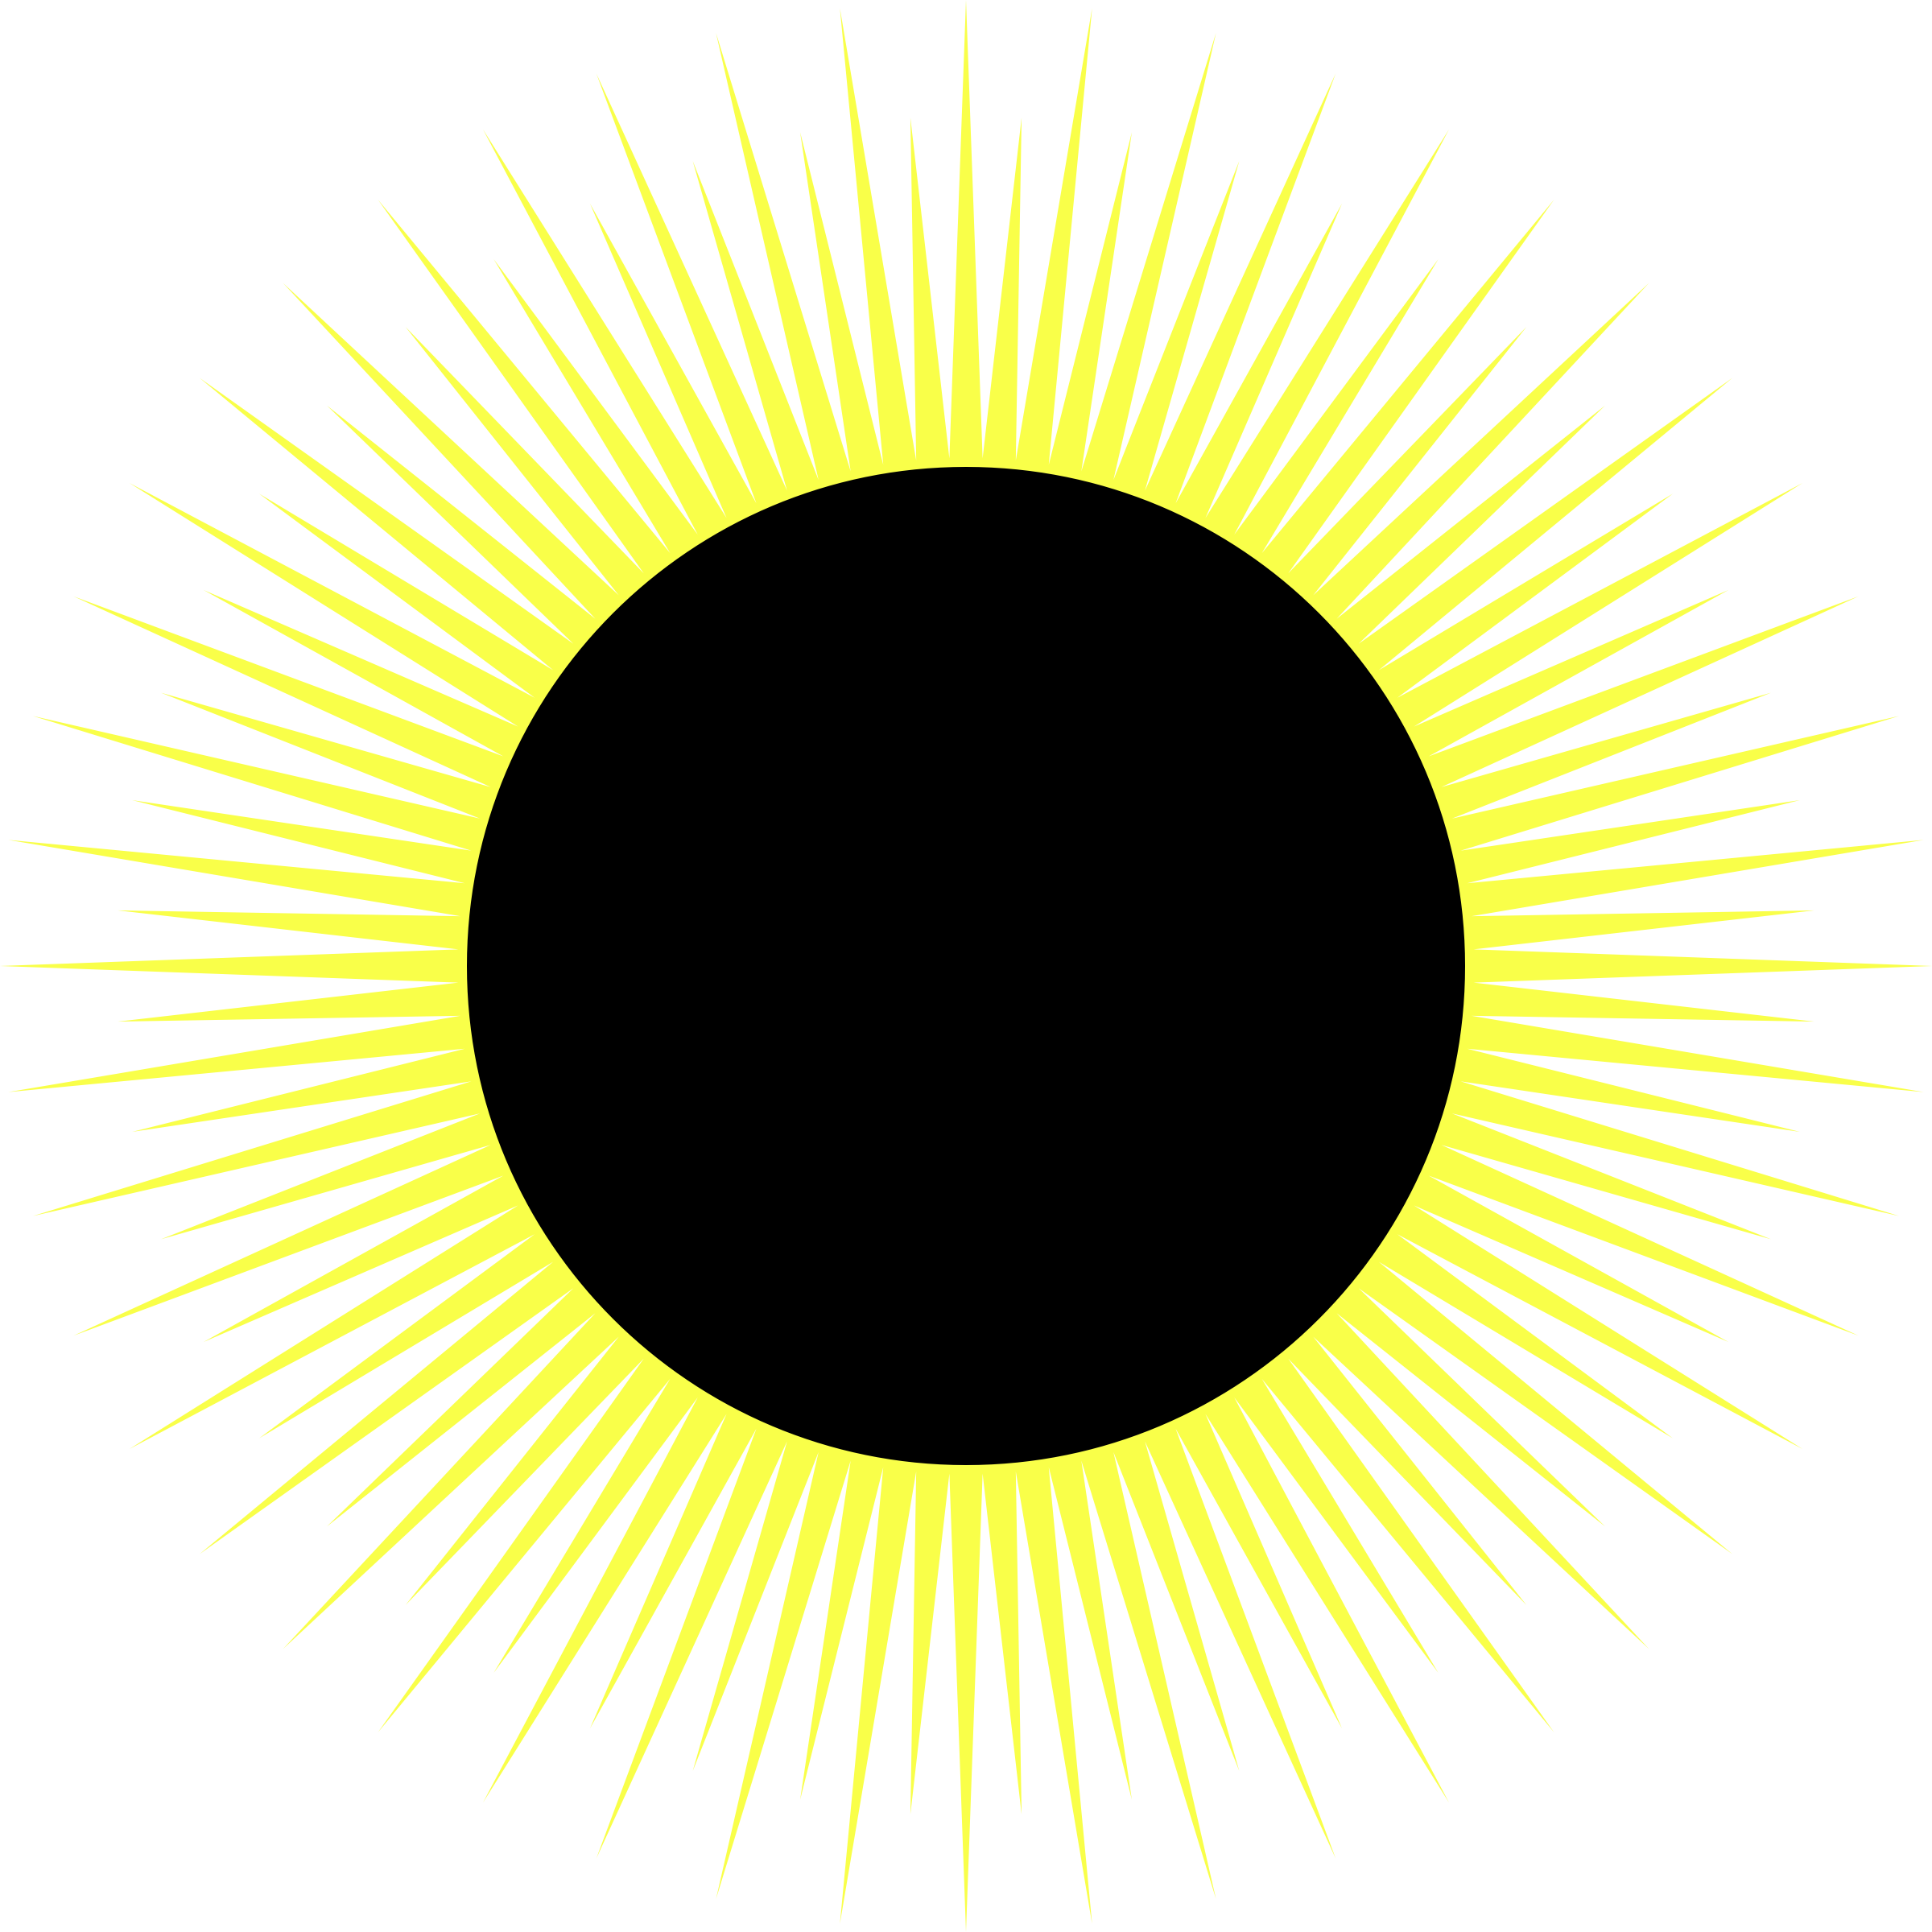 svg royalty free stock Solar big image png. Eclipse clipart.